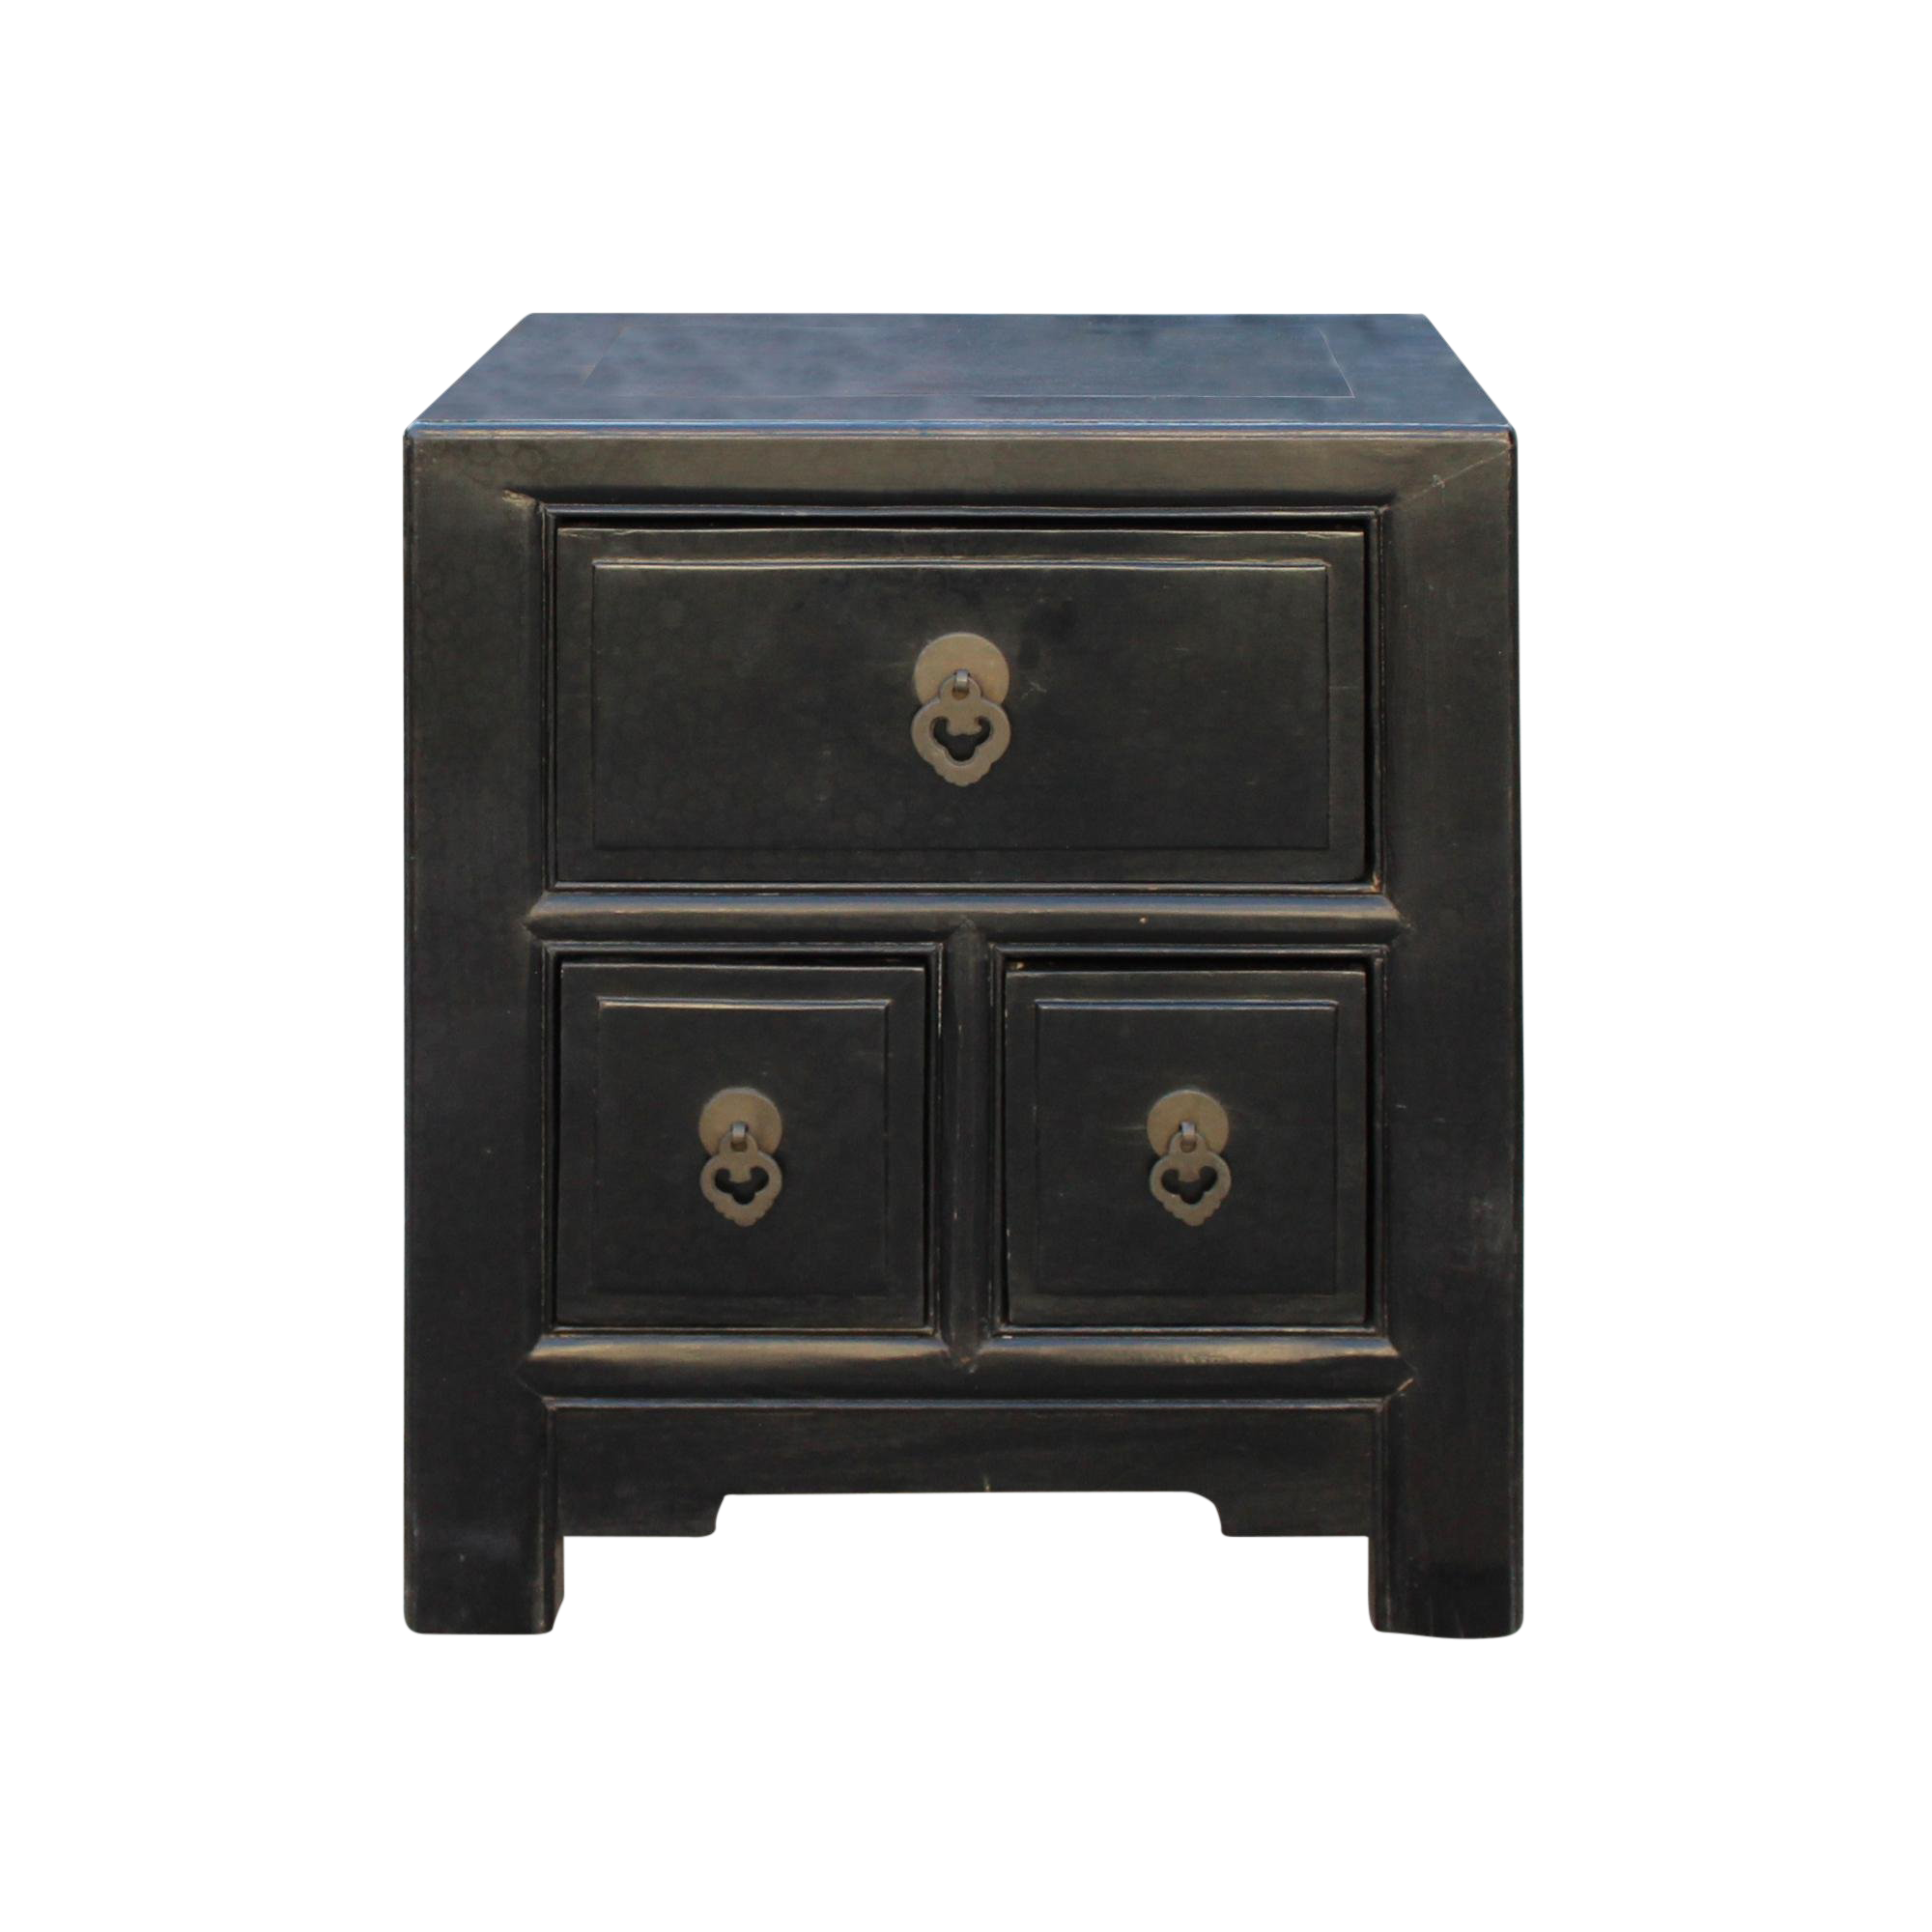 oriental distressed black drawers end table nightstand chairish round rattan coffee with stools tables brisbane sofa eating clearance patio furniture sets stone living room iron